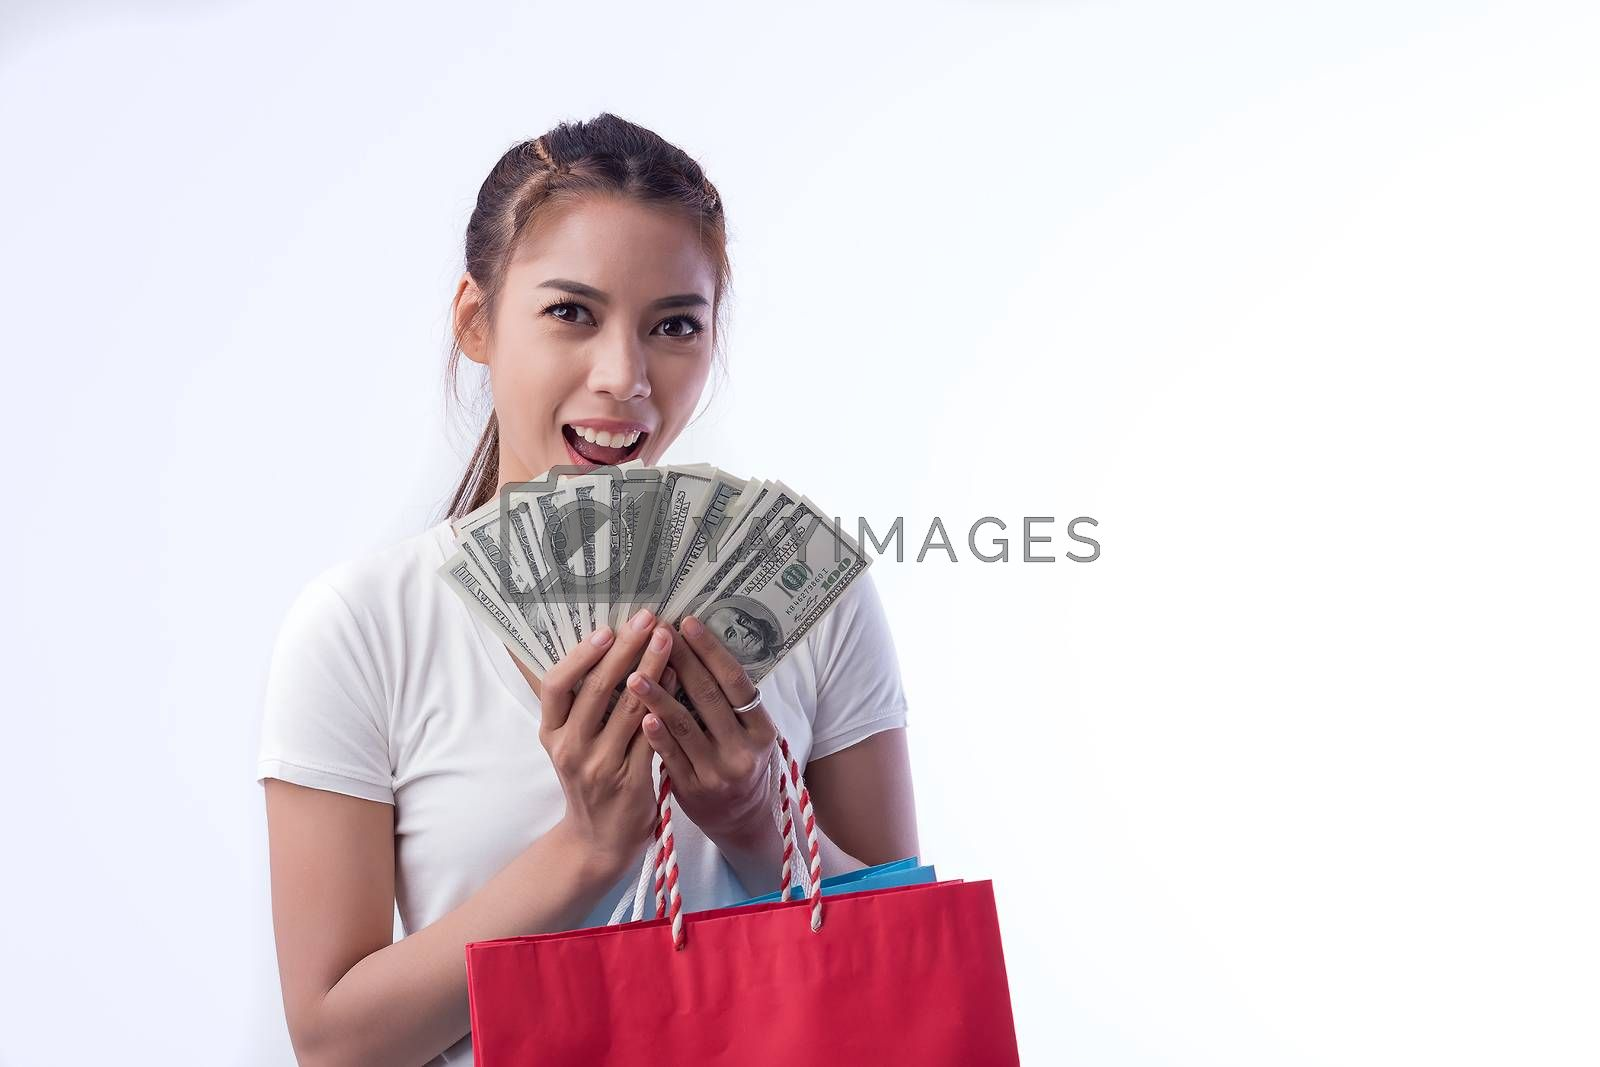 Picture of a beautiful black haired girl in a summer dress, holding a dollar bill with a shopping bag, and looking at the camera through a white background.